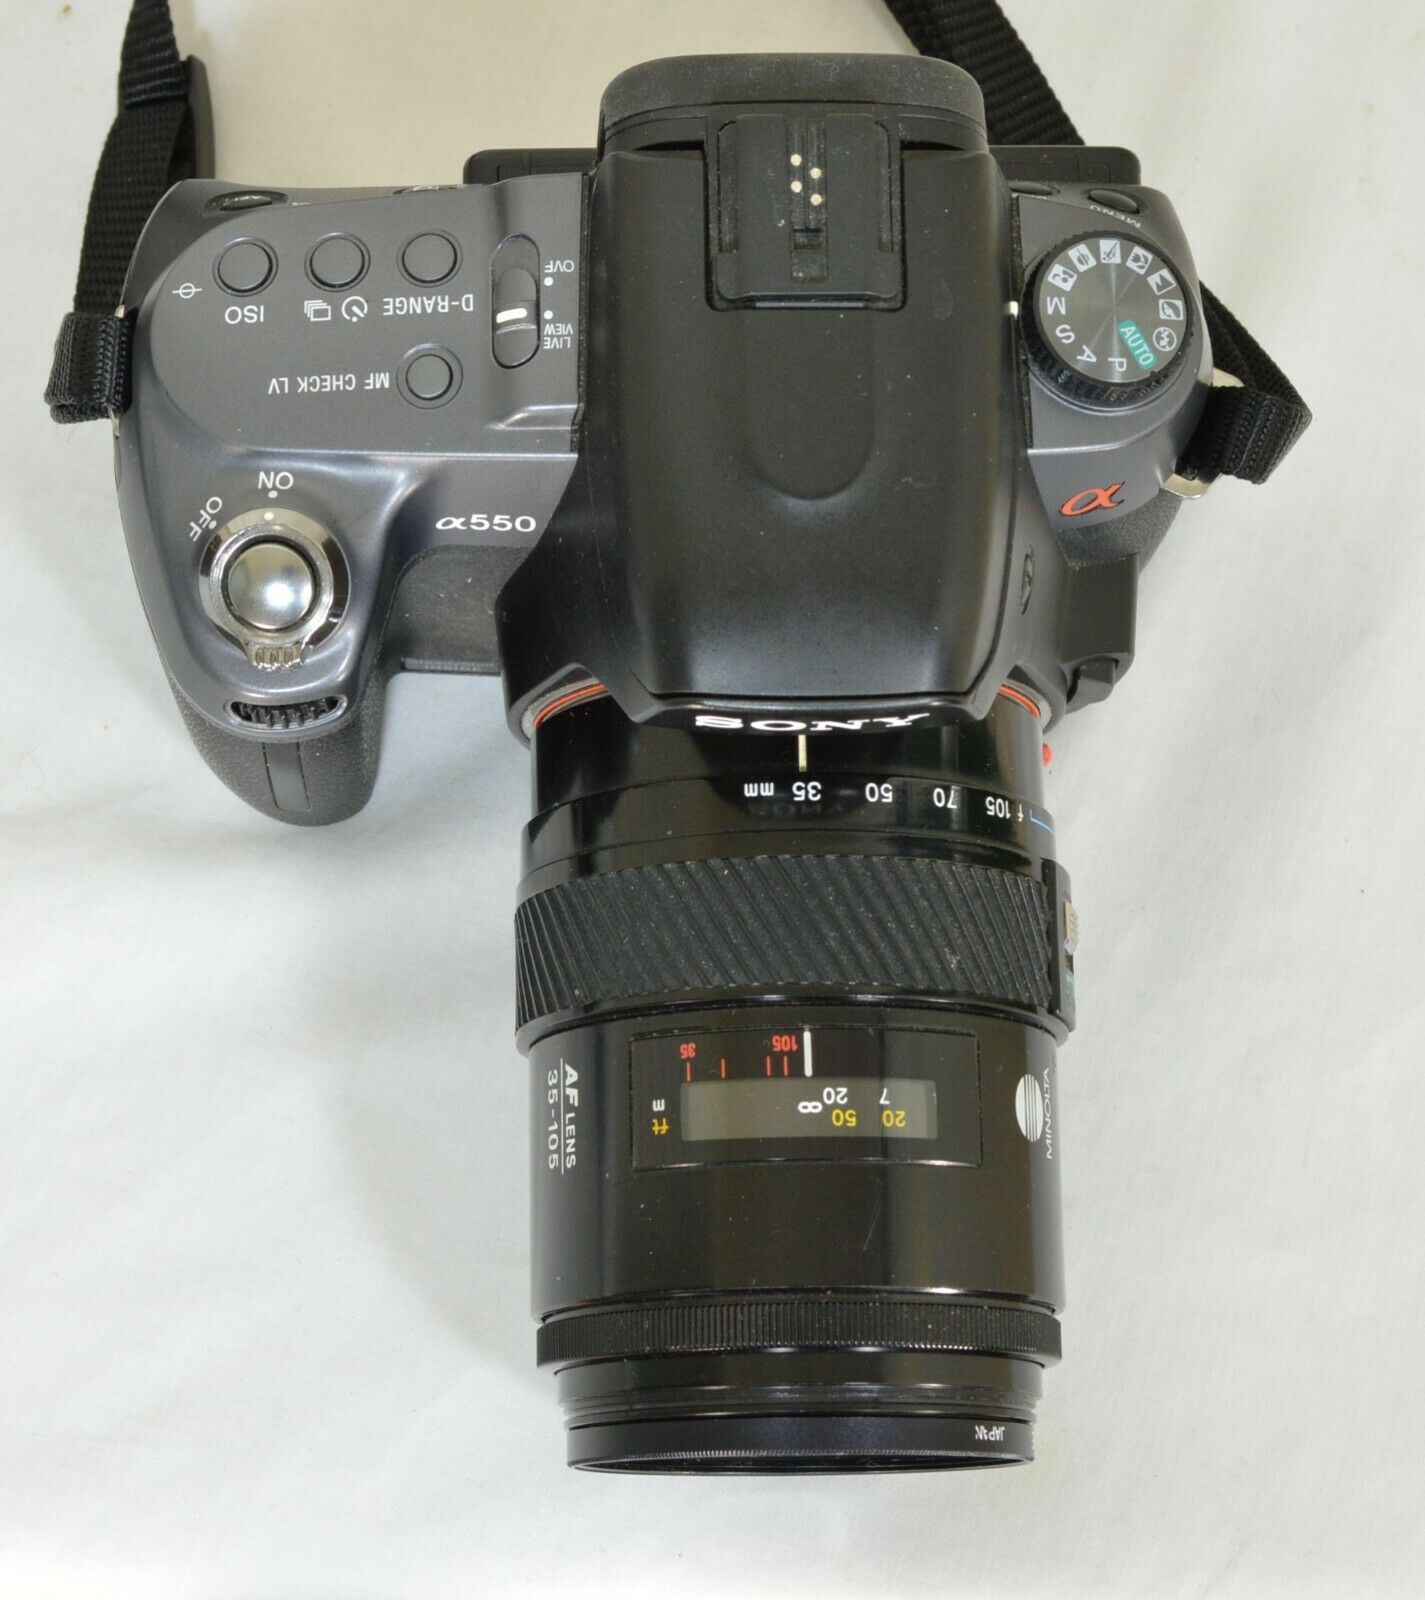 Sony Alpha DSLR-A550 14.2MP DSLR Camera Minolta Maxxum 35-105mm f/3.5-4.5 AF Len image 3